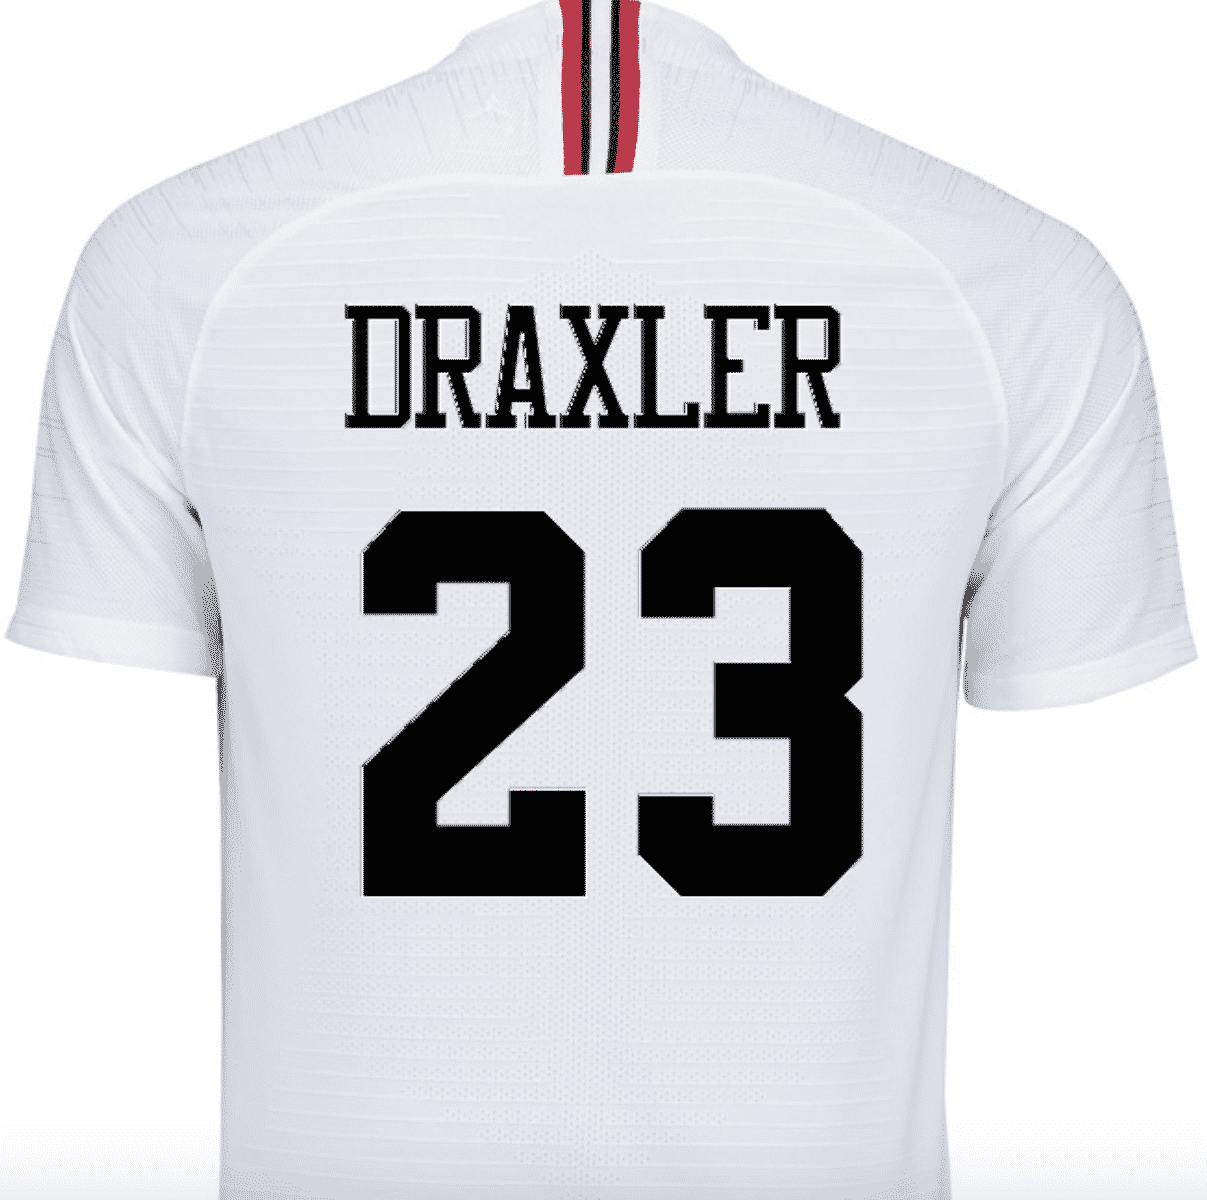 flocage-draxler-23-maillot-paris-saint-germain-third-ligue-des-champions-jordan